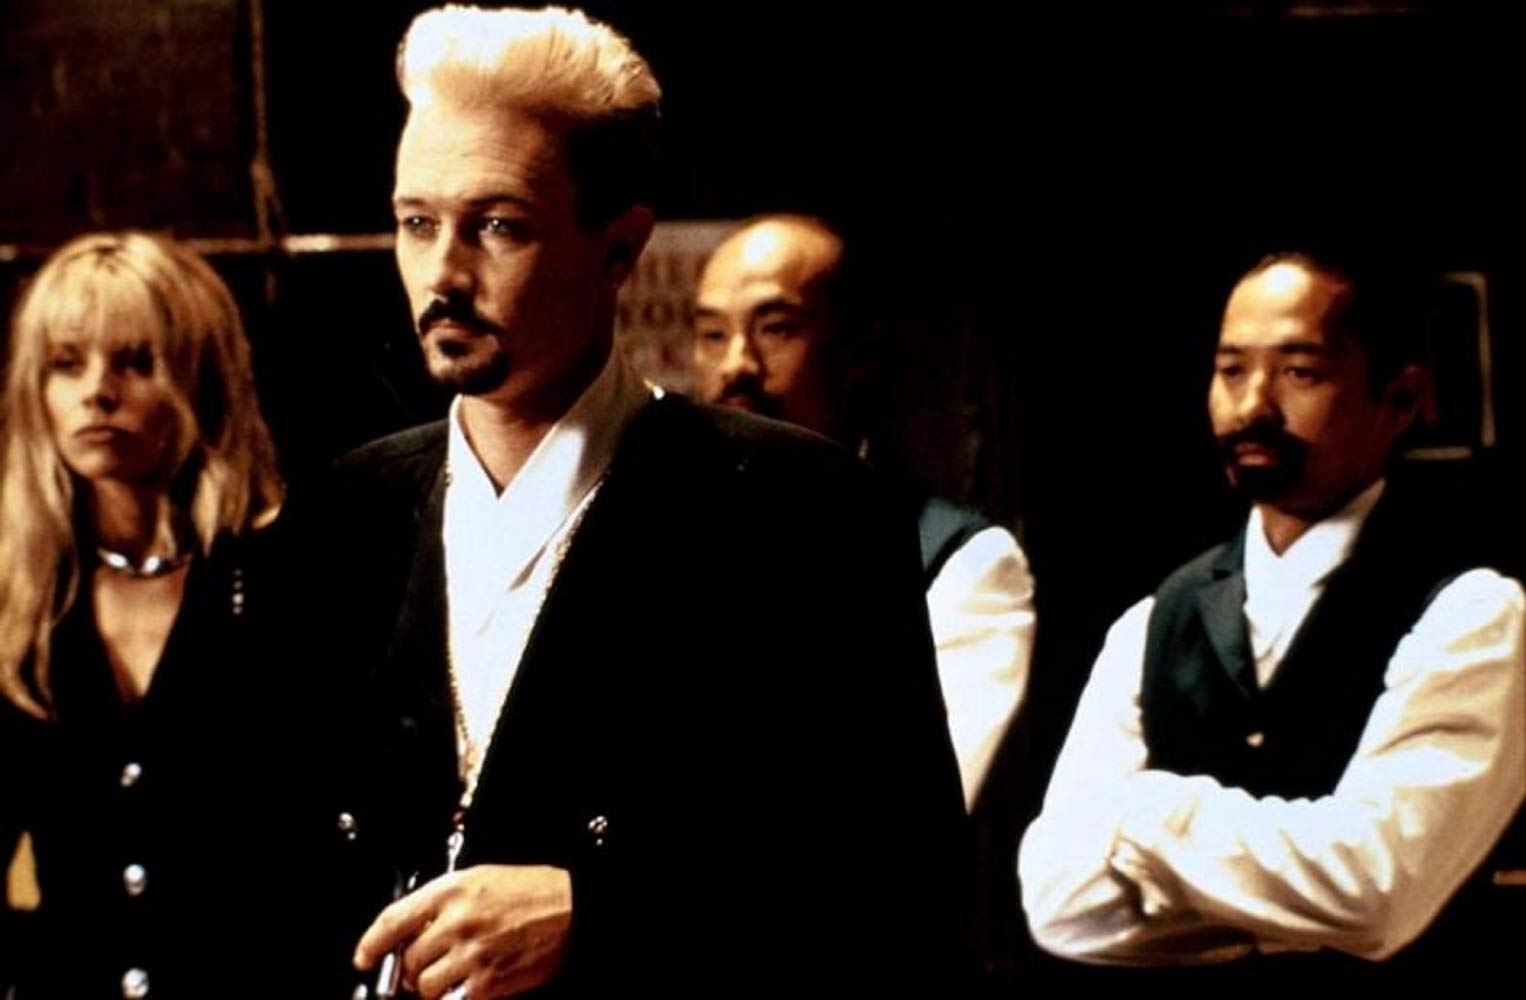 Robert Patrick, Kristina Malandro Wagner, Al Leong and Jeff Imadaa in Double Dragon (1994)